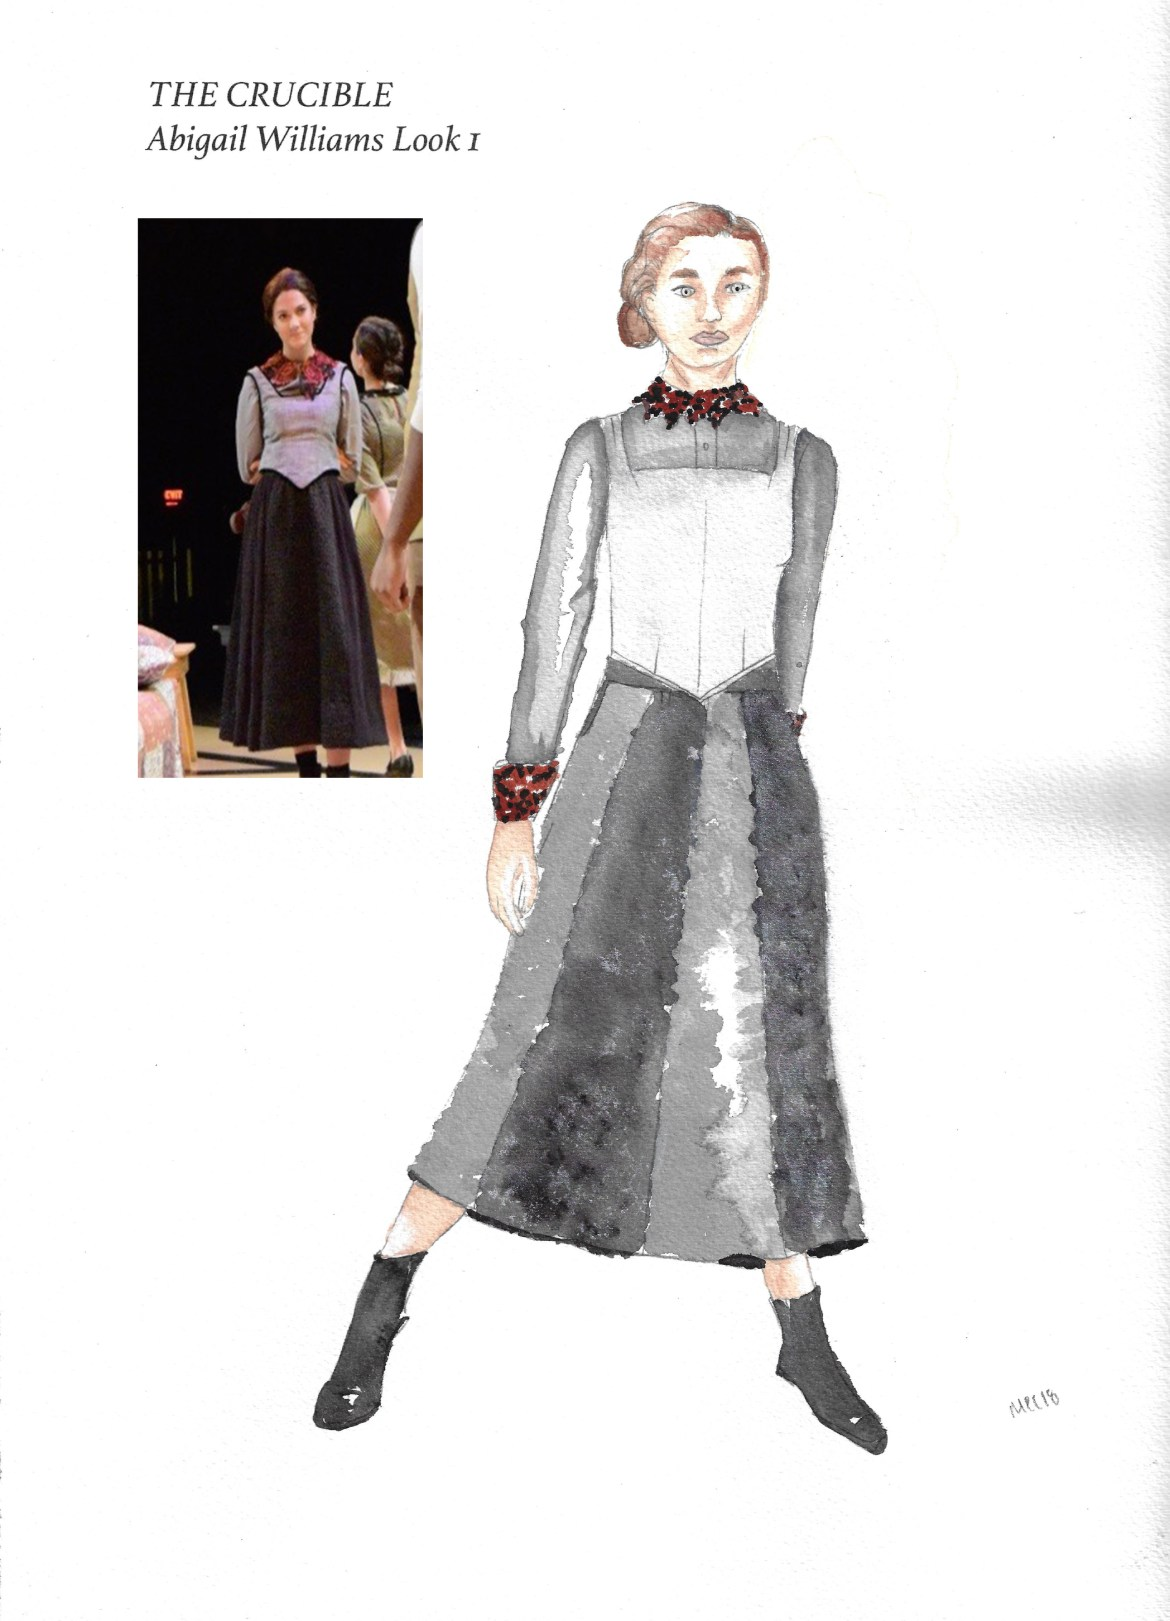 A rendering of a costume for Abigail Williams along with an imposed photo from the rehearsal.